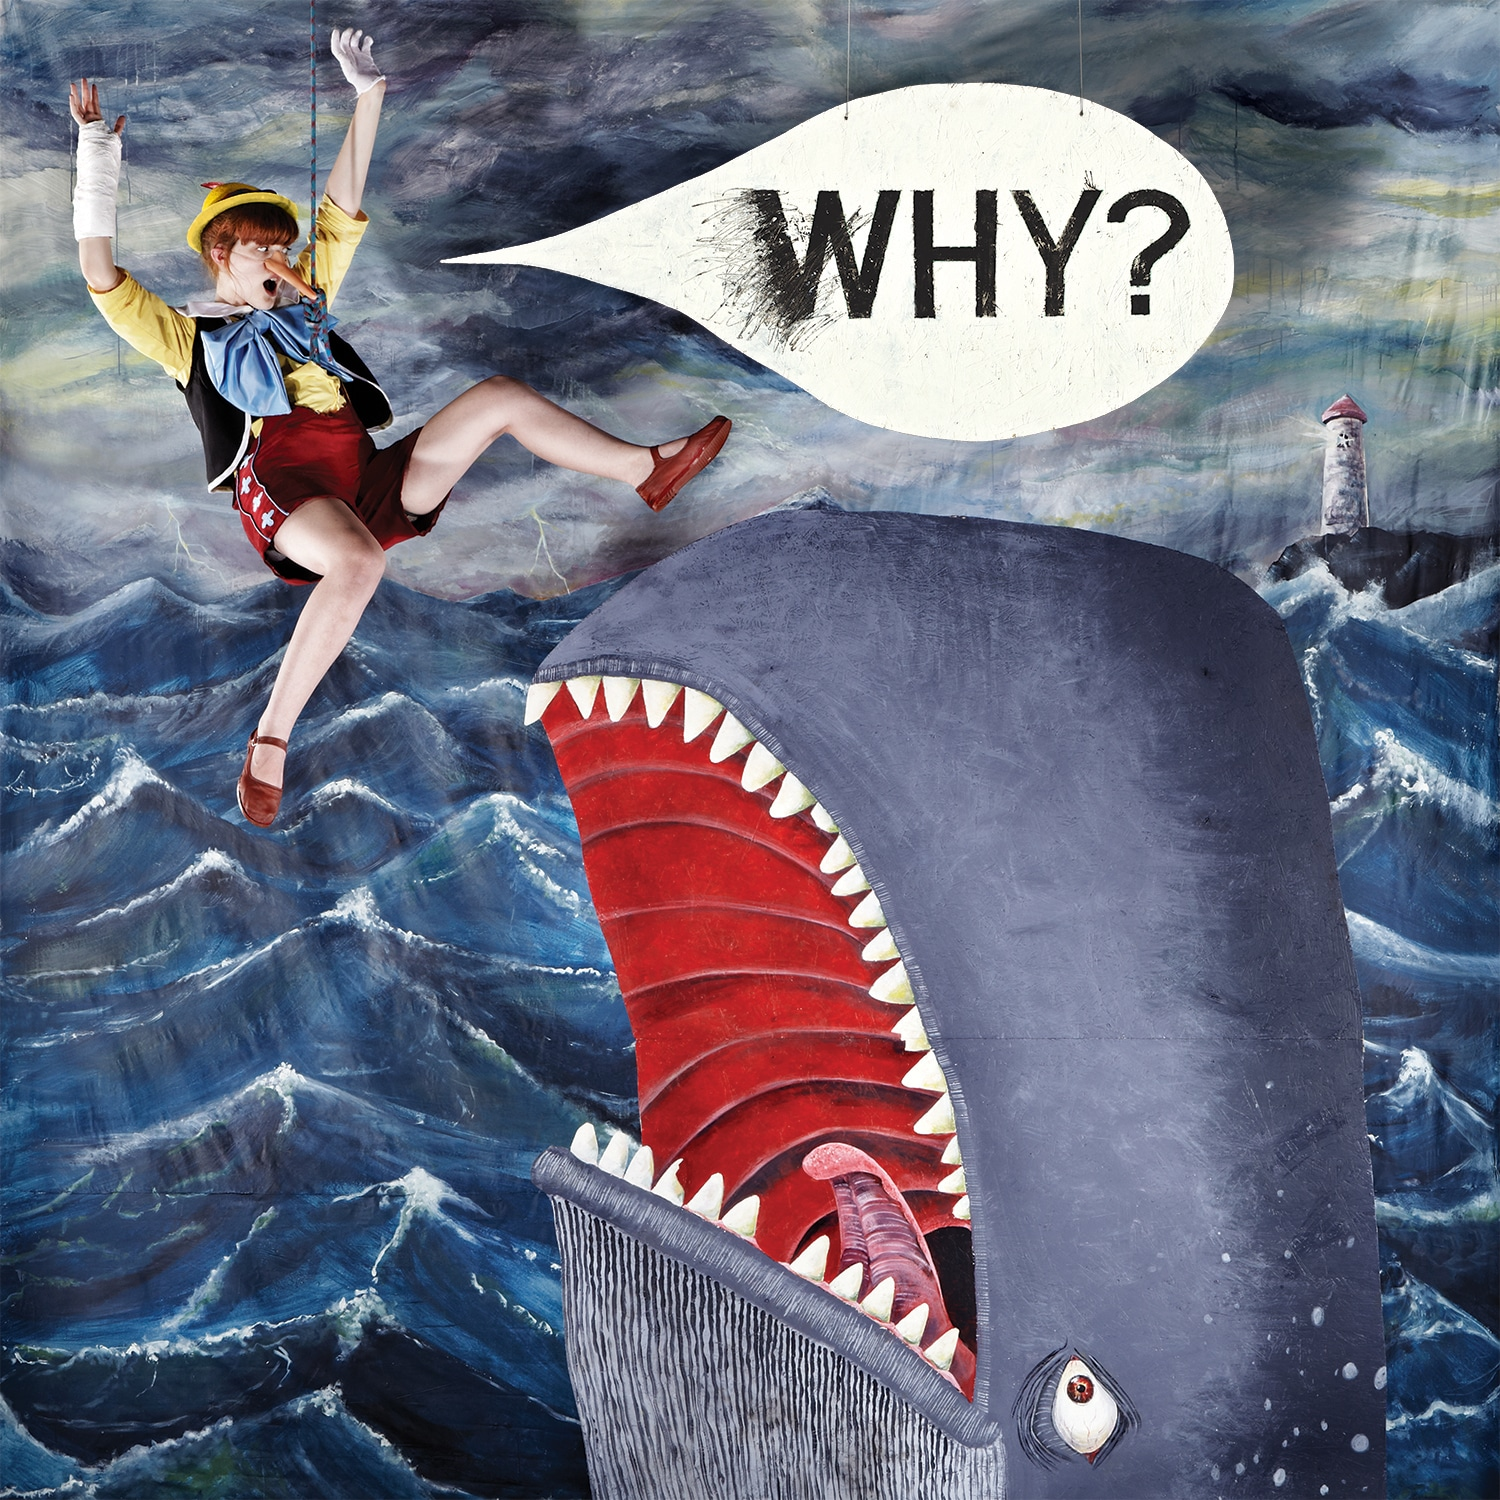 WHY? Jonathans Hope hip hop  WHY?   Jonathans Hope artworks 000029234681 ltai85 original